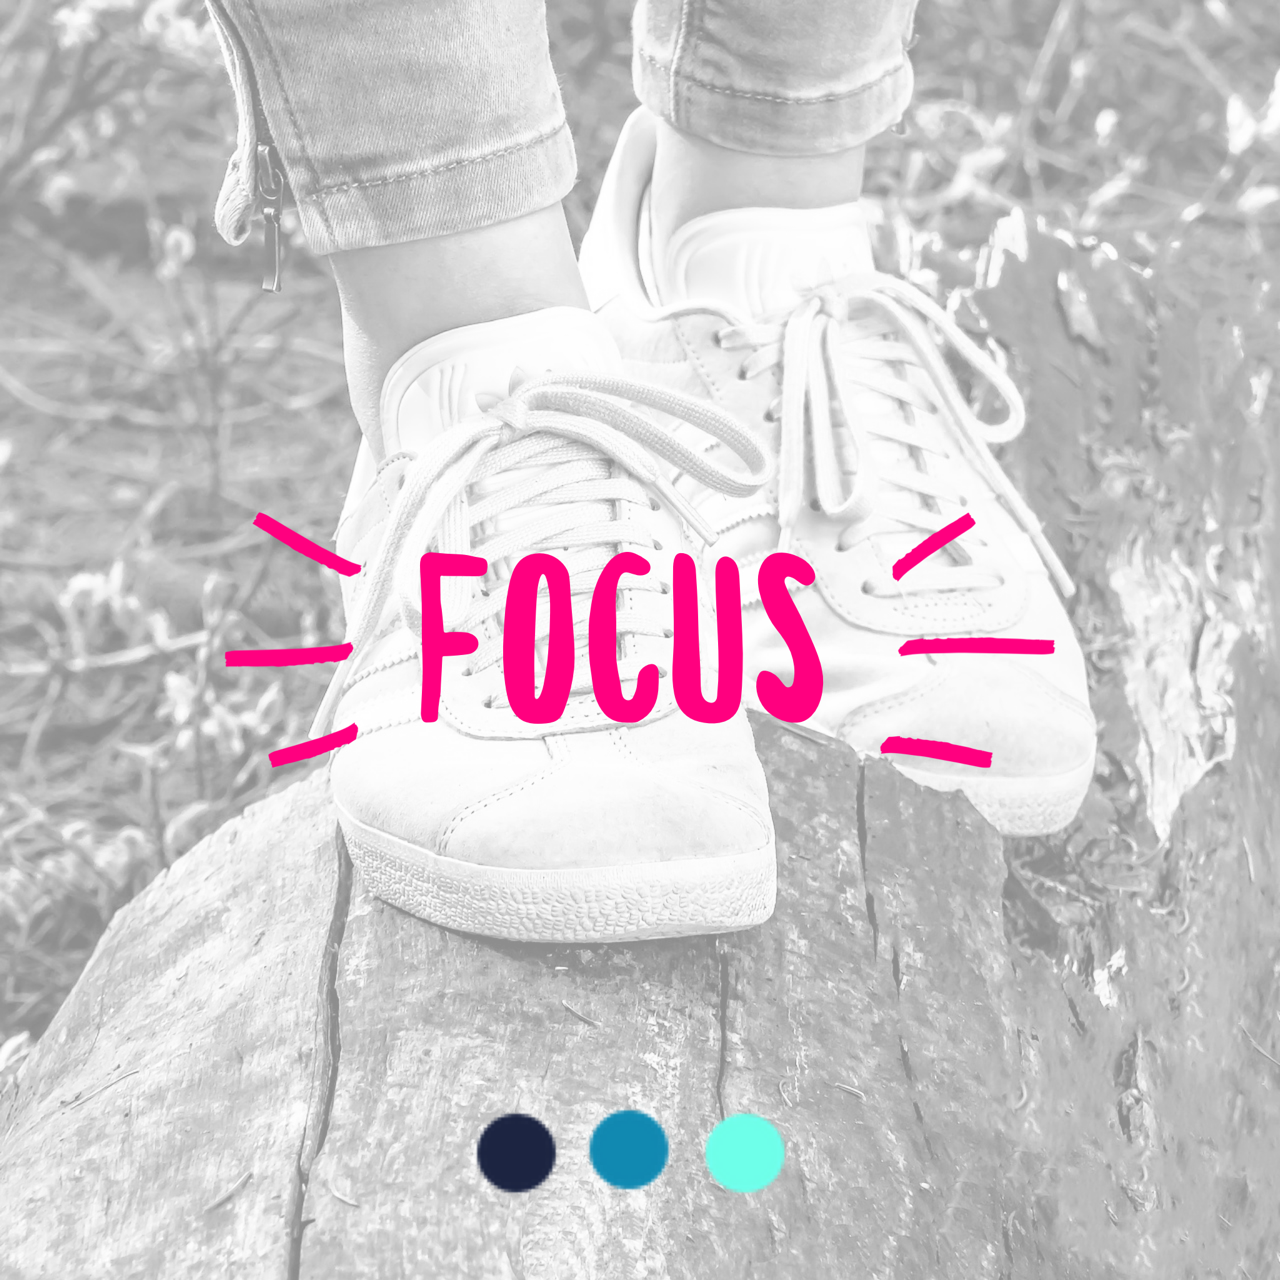 MAY   In May, we remind you to  FOCUS . Make yourself a priority. Focus on the progress you made and continue on your path.